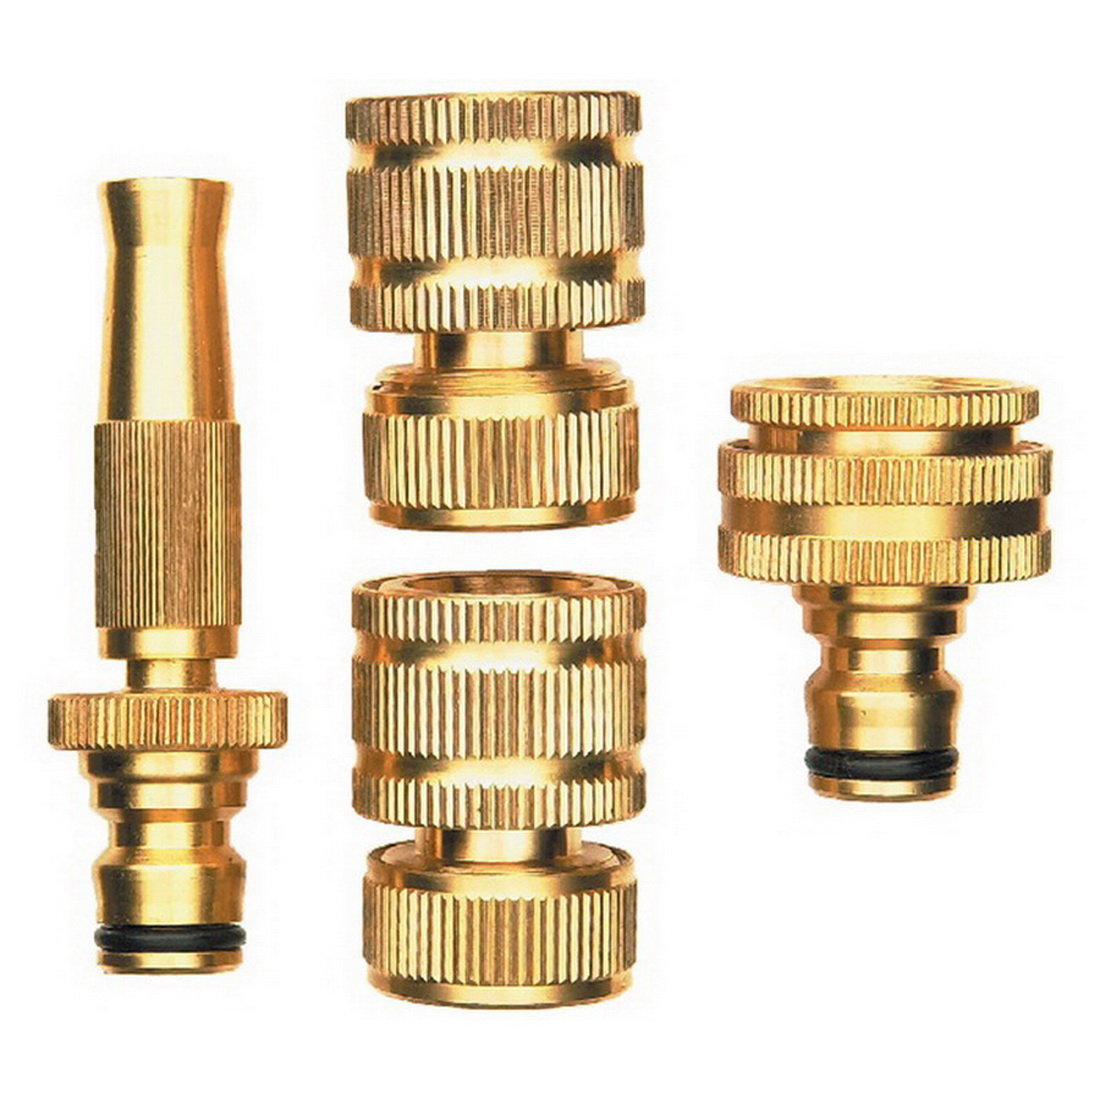 Brass 4 Piece Hose Fitting Set 12mm Connection